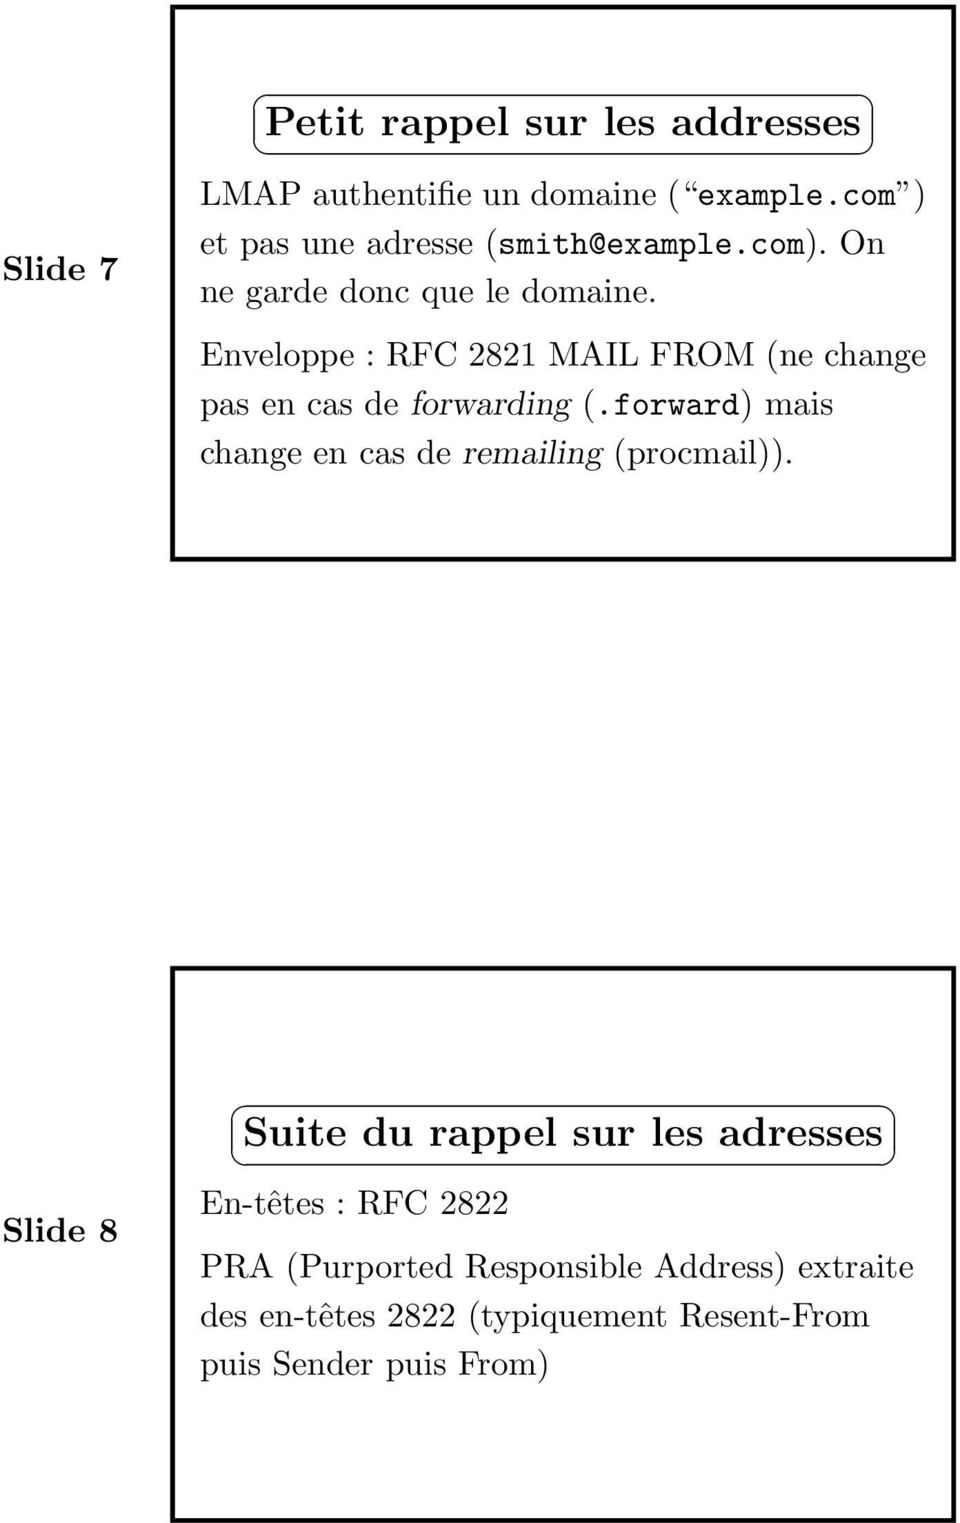 Enveloppe : RFC 2821 MAIL FROM (ne change pas en cas de forwarding (.